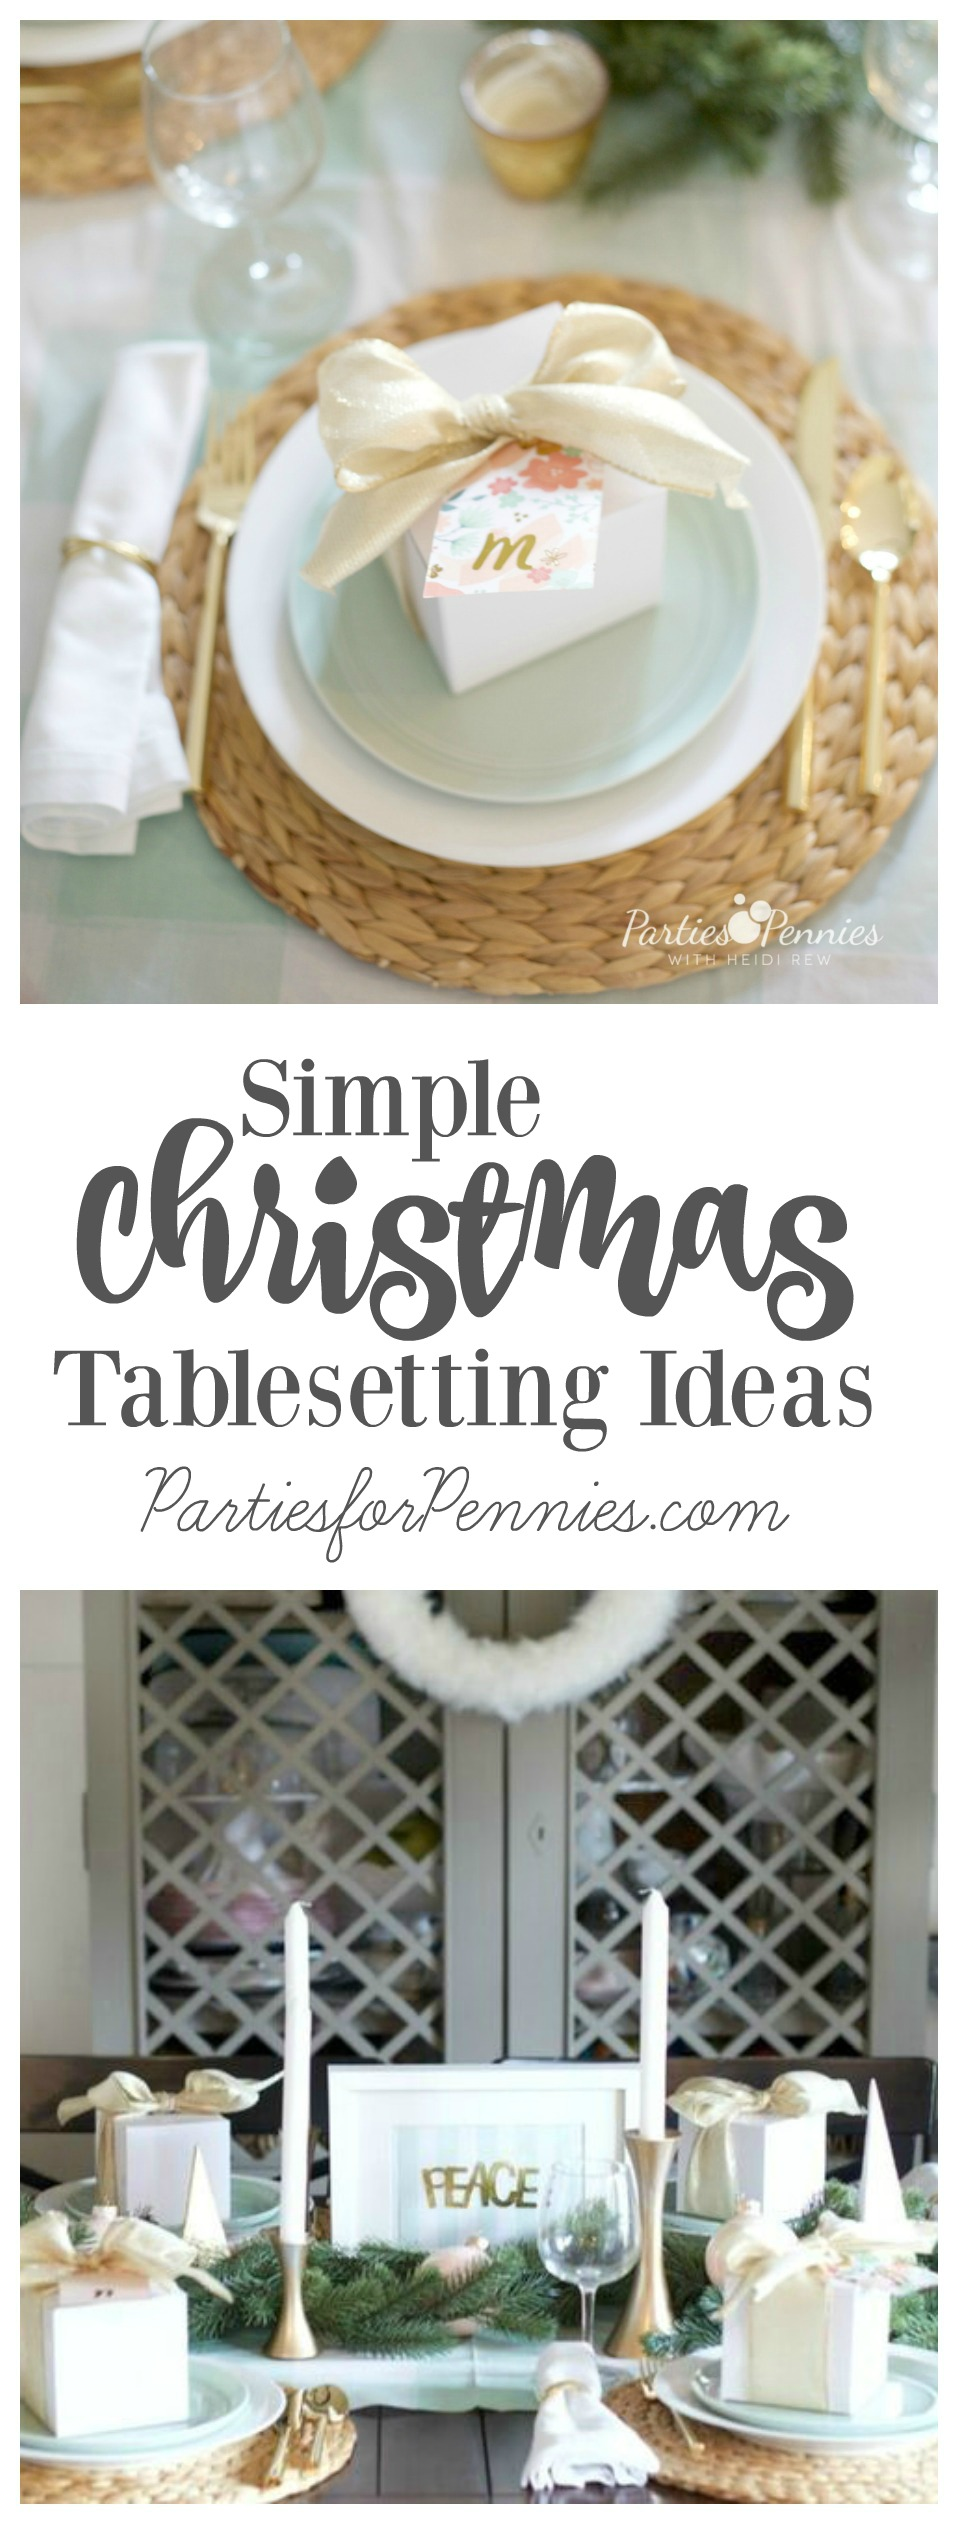 Simple Christmas Tablesetting Ideas by PartiesforPennies.com | Christmas Dinner Party, Entertaining, Tips